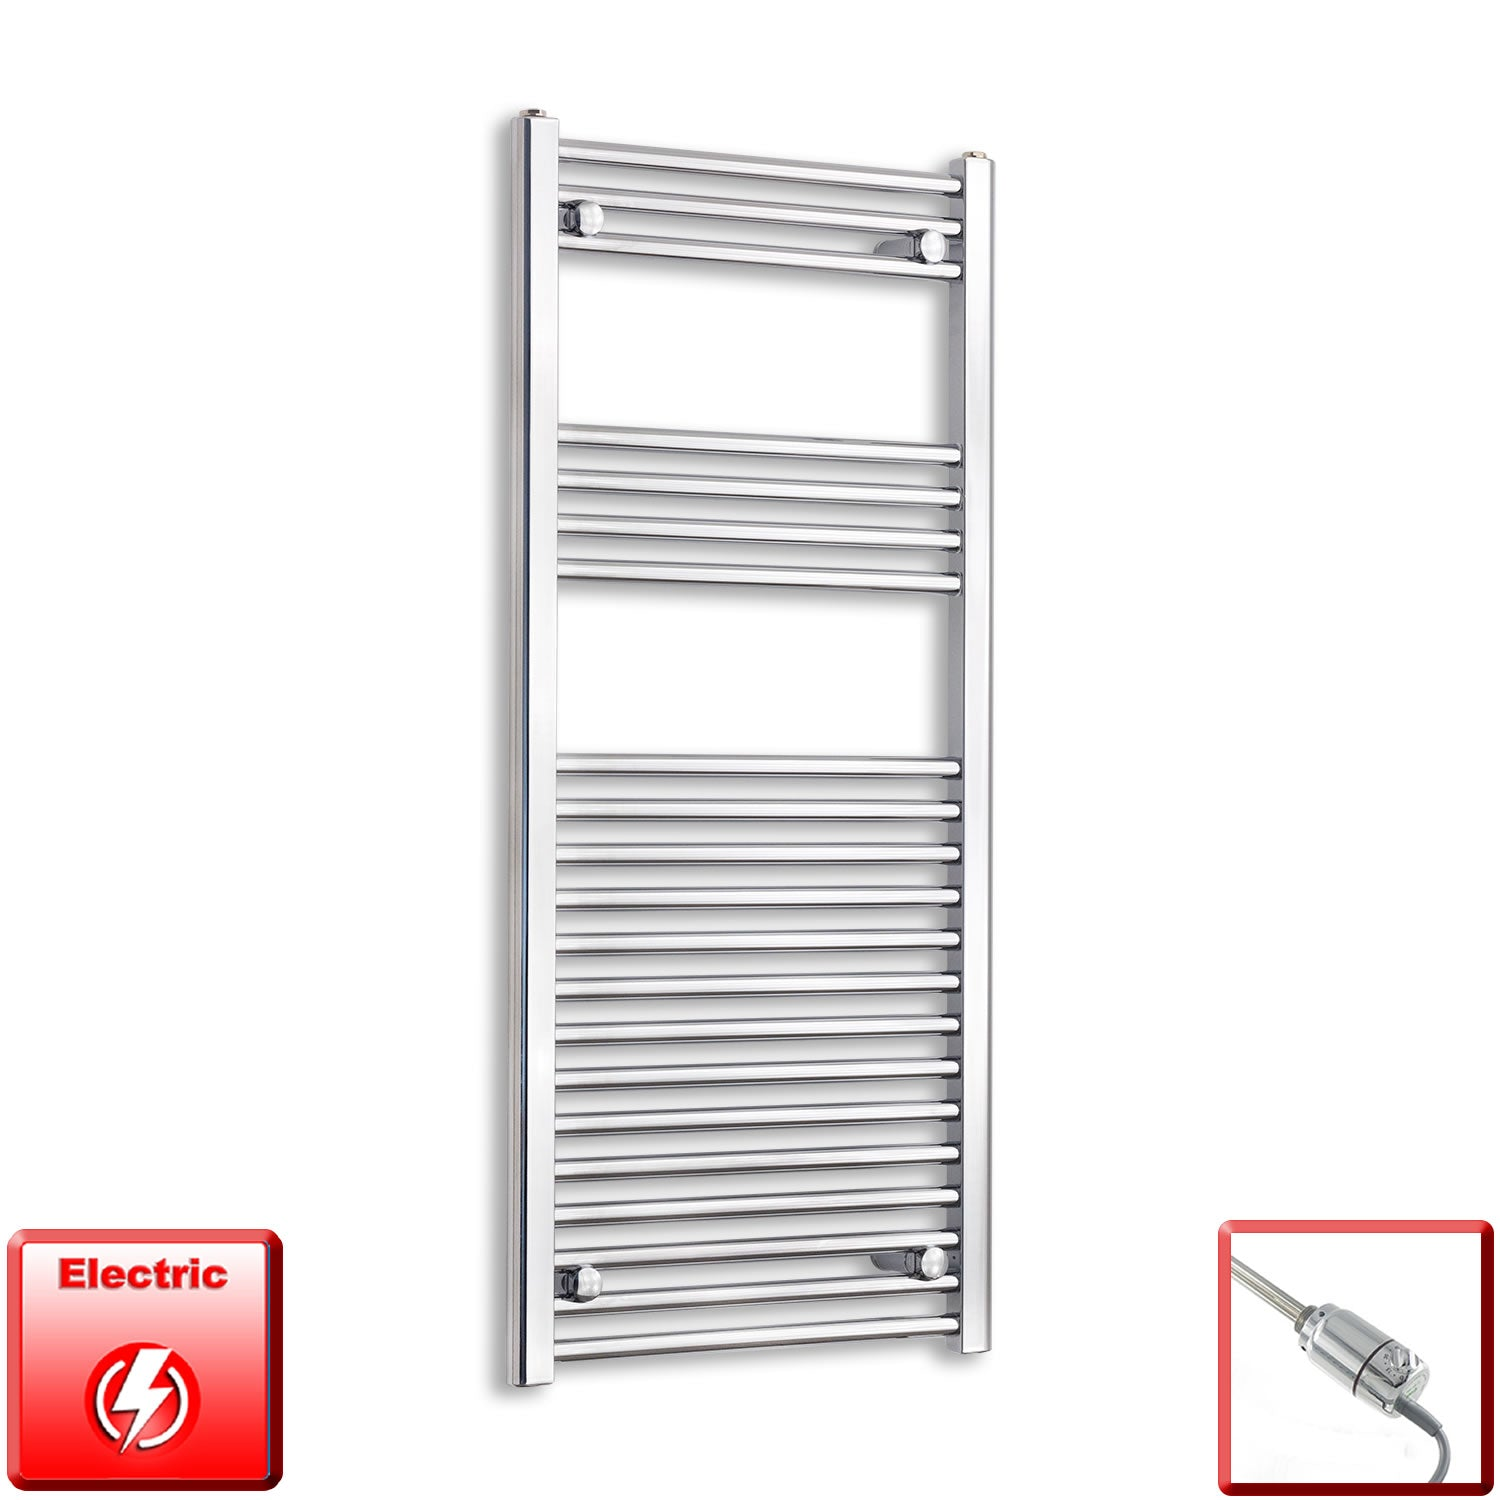 600mm Wide 1100mm High Pre-Filled Chrome Electric Towel Rail Radiator With Thermostatic GT Element